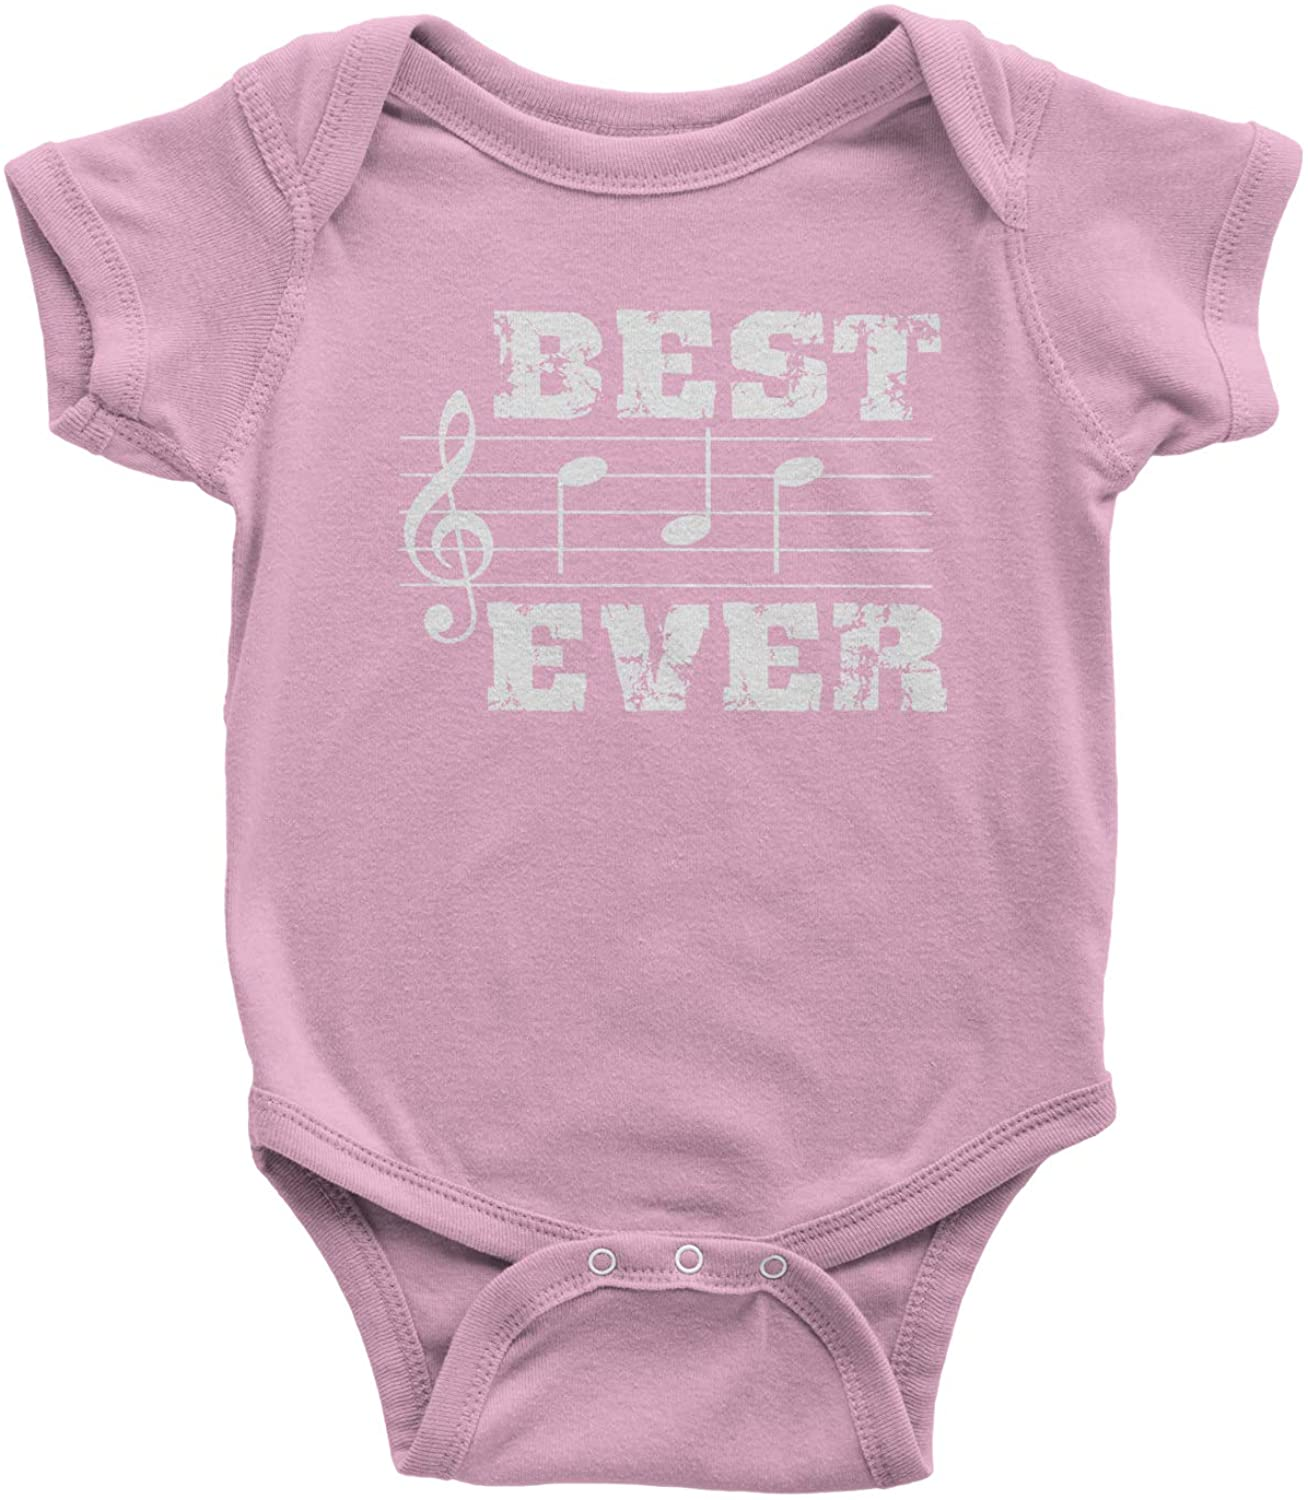 Expression Tees Musical Notes Best Dad Ever Infant One-Piece Romper Bodysuit